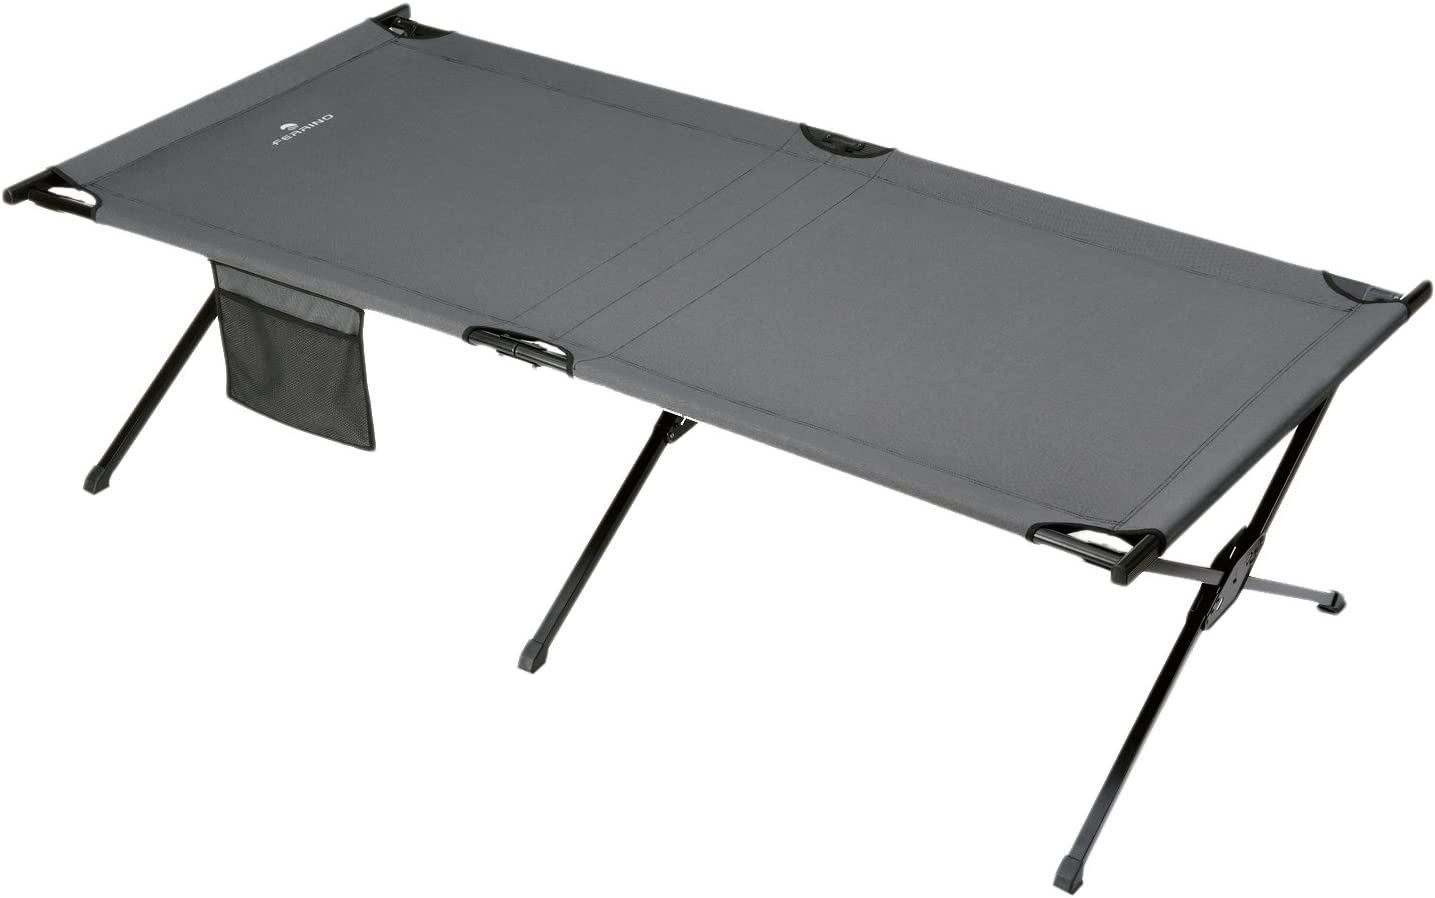 - Amazon.com: Ferrino Steel-alu Heavy Duty Folding Camp Bed, Green